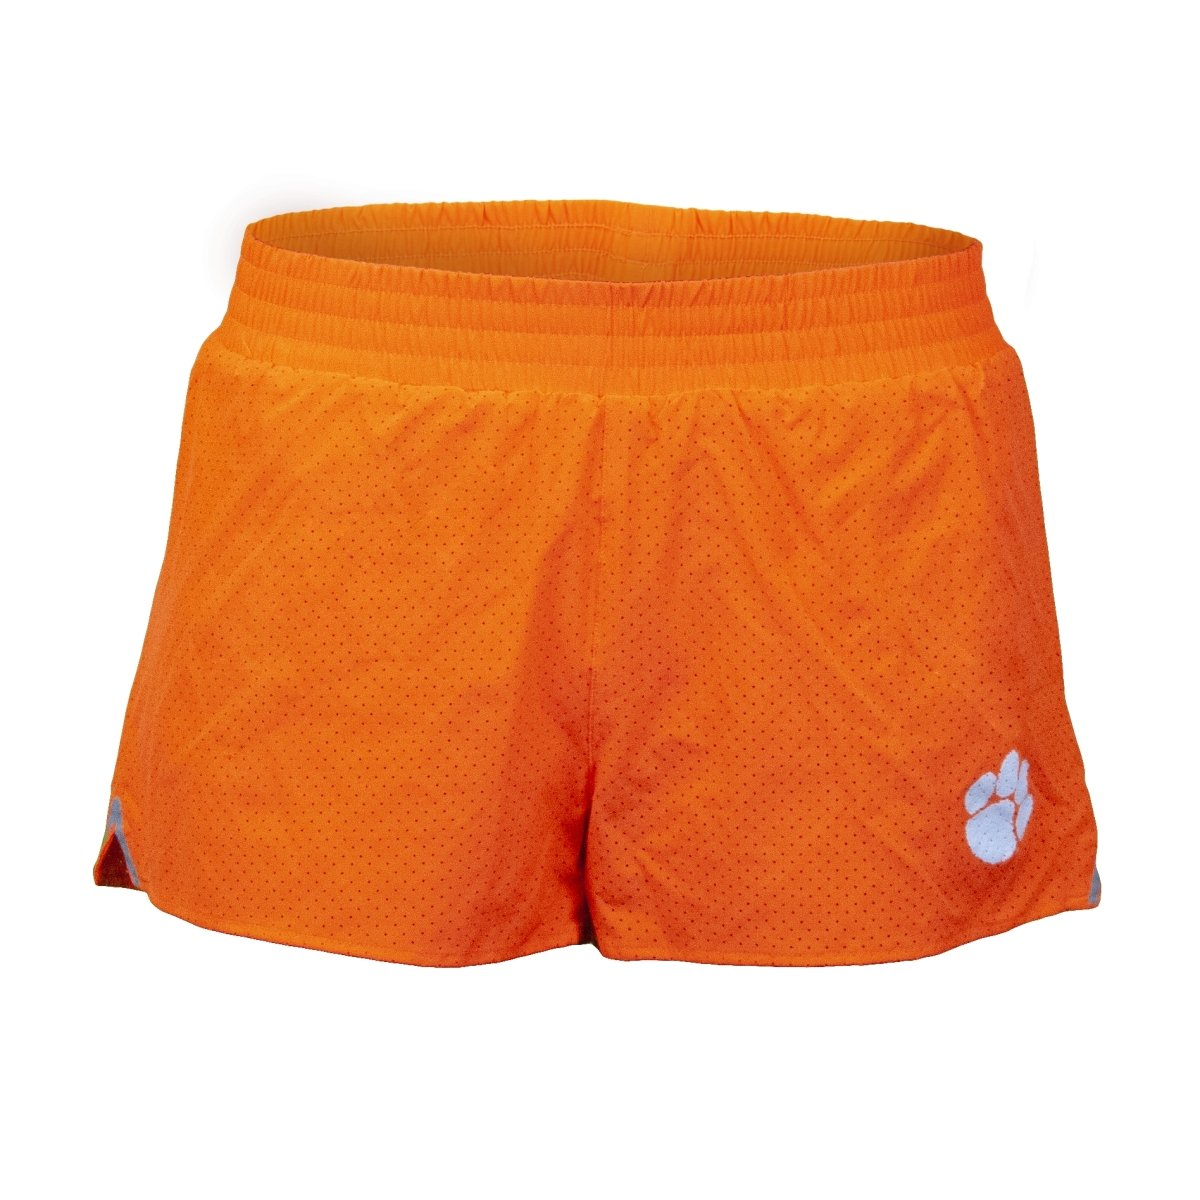 Ladies Mesh Reflective Shorts - Mr. Knickerbocker